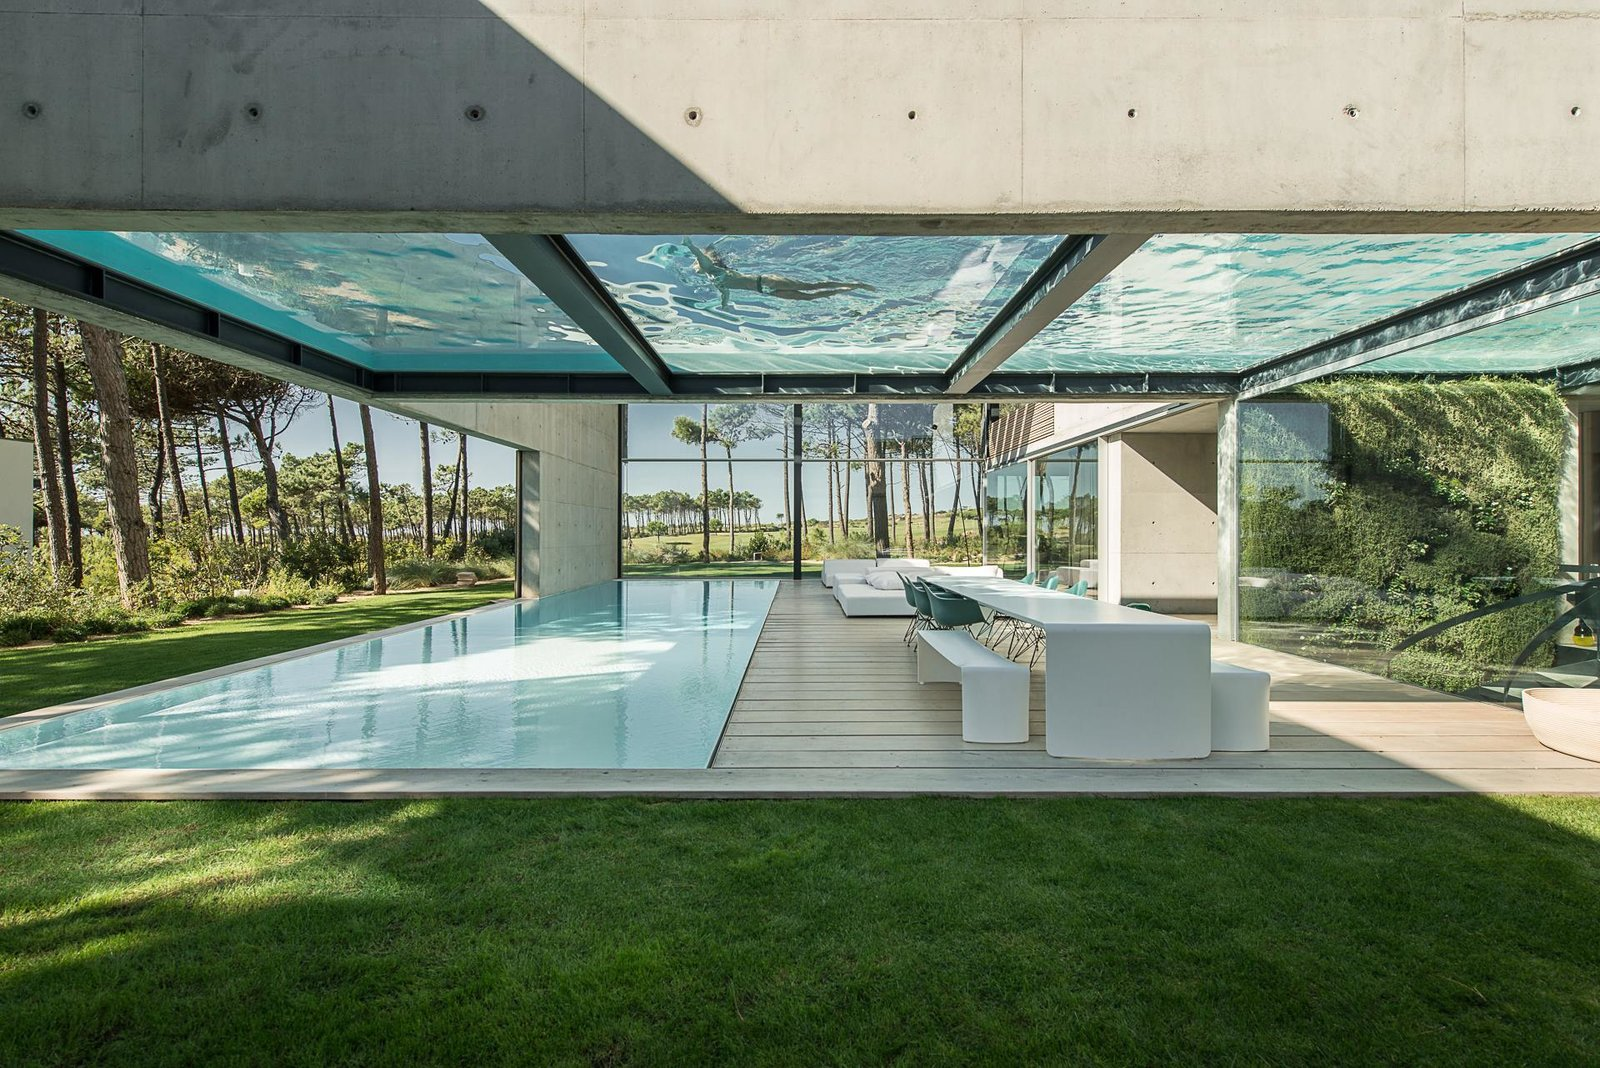 The Wall House in Cascais, a coastal town in an area known as the Portuguese Riviera, is an 11,840-square-foot home made with concrete, wood, and glass—and boasts a pair of large swimming pools on two levels.  Designed by José Guedes Cruz, César Marques, and Marco Marinho of the Portugal-based firm Guedes Cruz Architects, The Wall House is laid out in an open-box plan, and is fitted with plenty of glass windows to enhance the synergy between its interior and exterior spaces. Tagged: Outdoor, Back Yard, Trees, Grass, Large Pools, Tubs, Shower, Large Patio, Porch, Deck, Wood Patio, Porch, Deck, Swimming Pools, Tubs, Shower, and Plunge Pools, Tubs, Shower.  Photo 1 of 13 in A Pool With a Glass Bottom Hovers Over Another at a House in the Portuguese Riviera from 25 Modern Homes That Kill it With Concrete